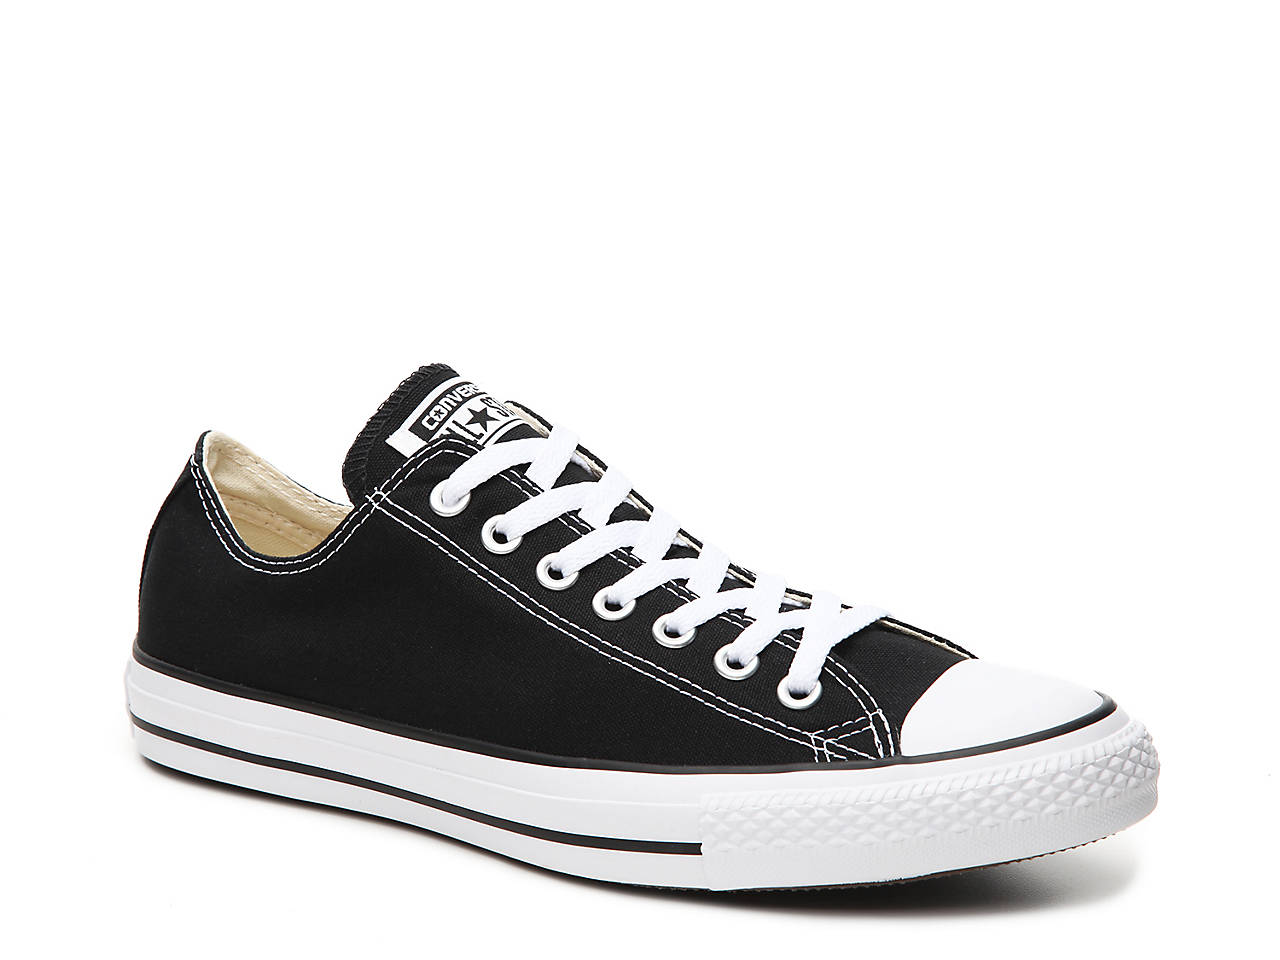 31246eeddcb Converse Chuck Taylor All Star Sneaker - Men s Men s Shoes